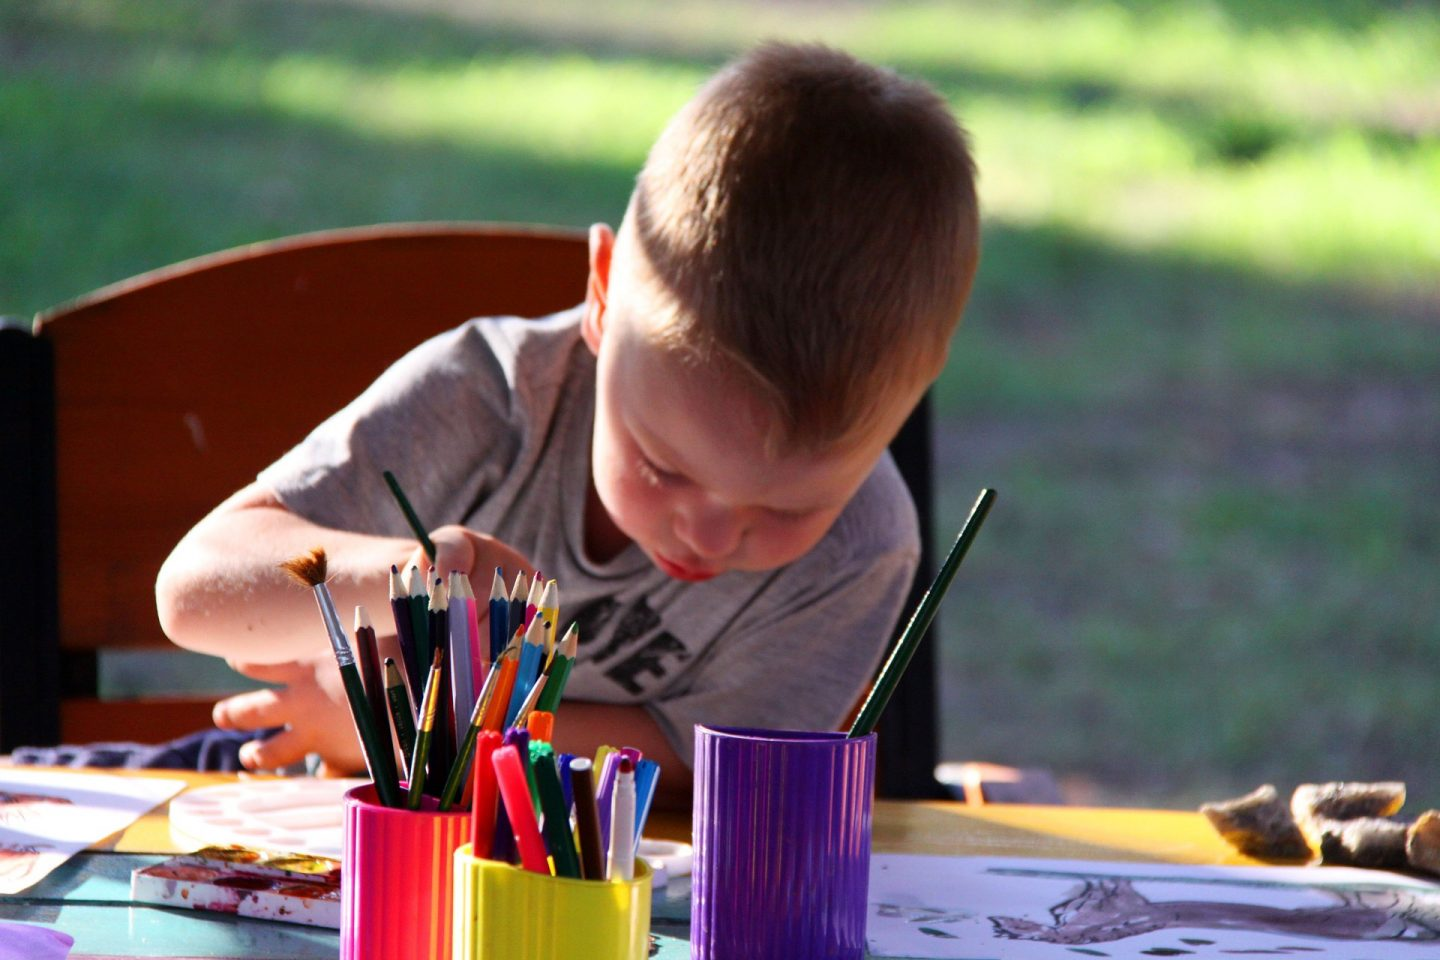 Lockdown party ideas - A boy painting in the garden